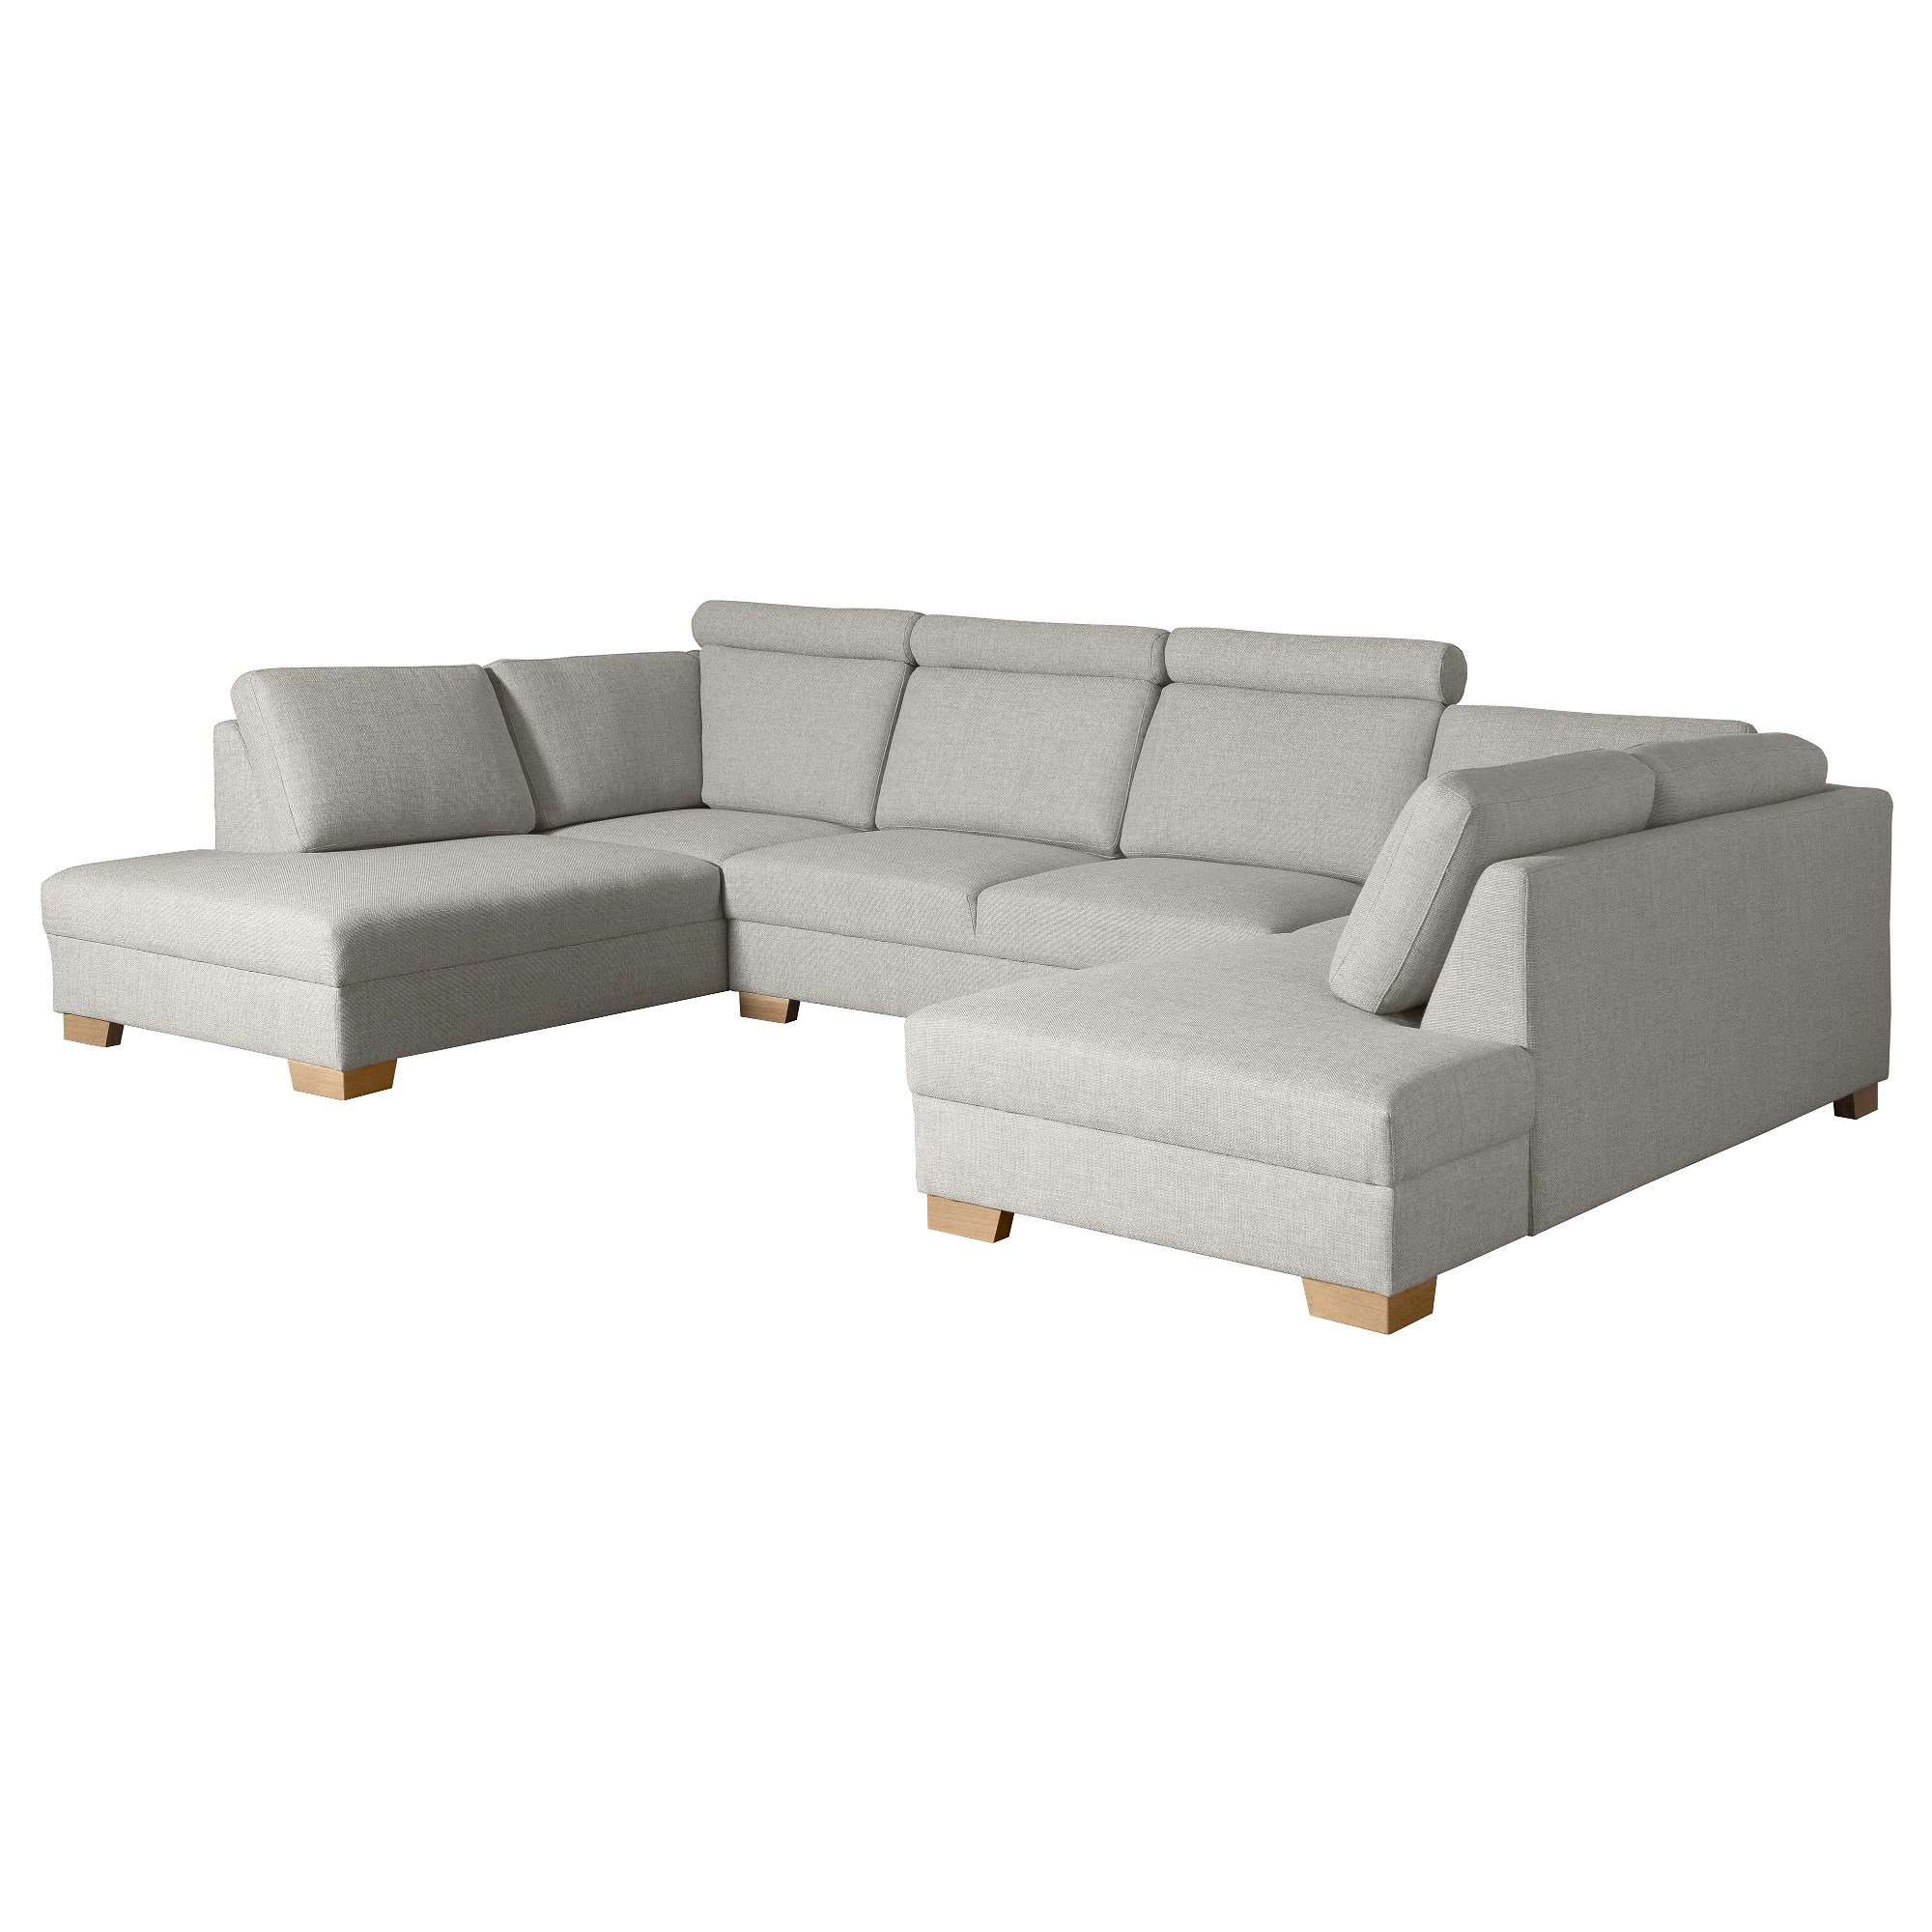 U Sofa U Shaped Sofa 4 Seat SÖrvallen Tenö Light Grey